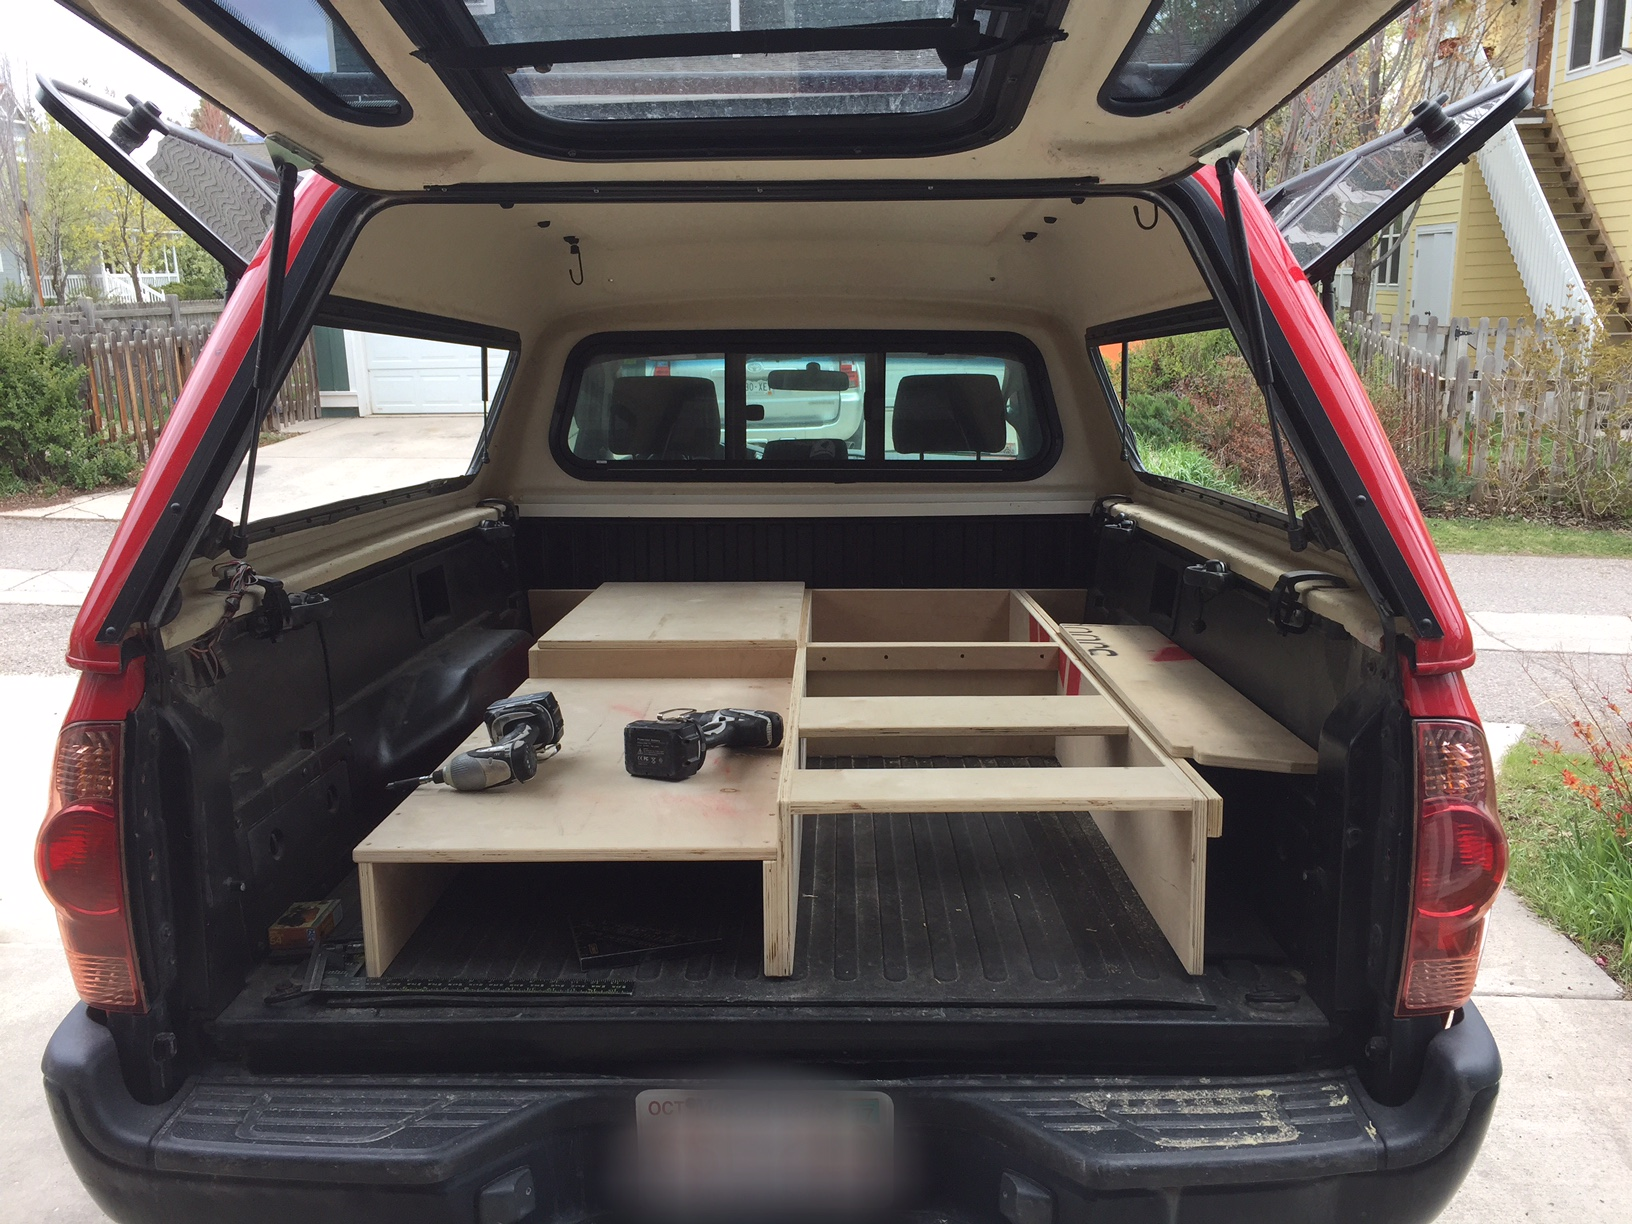 vanlife build out